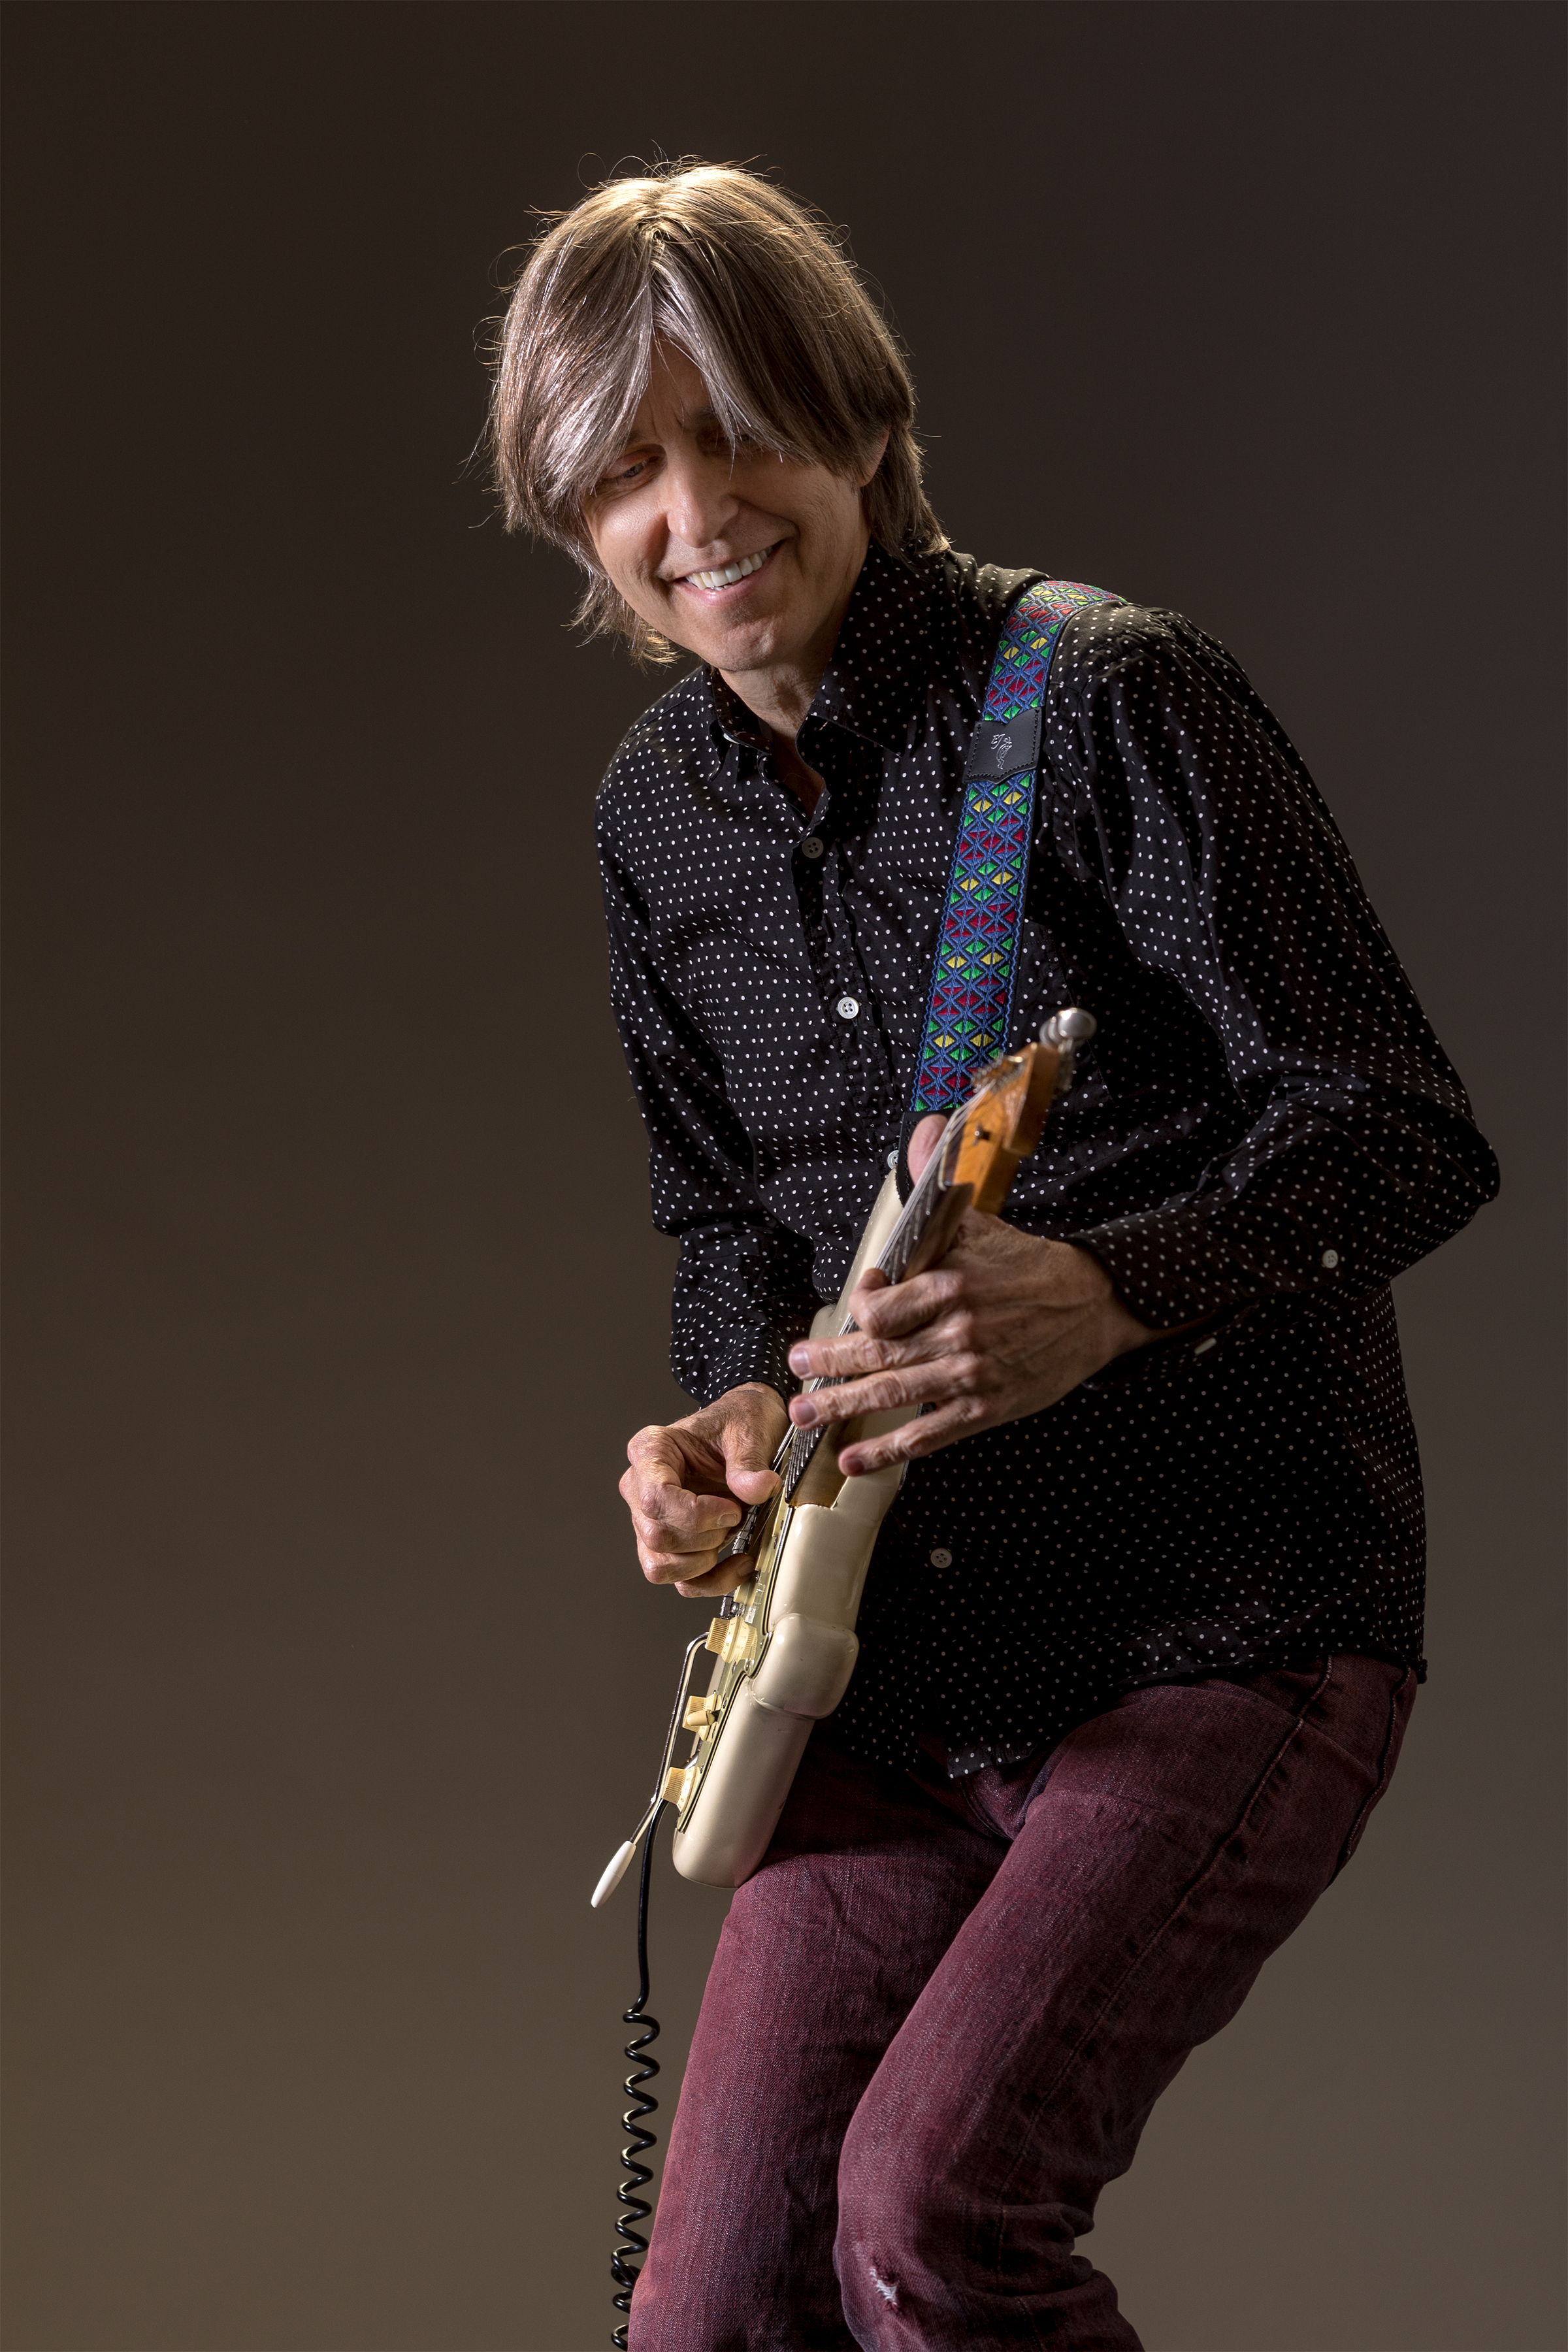 Eric Johnson by Max Crace